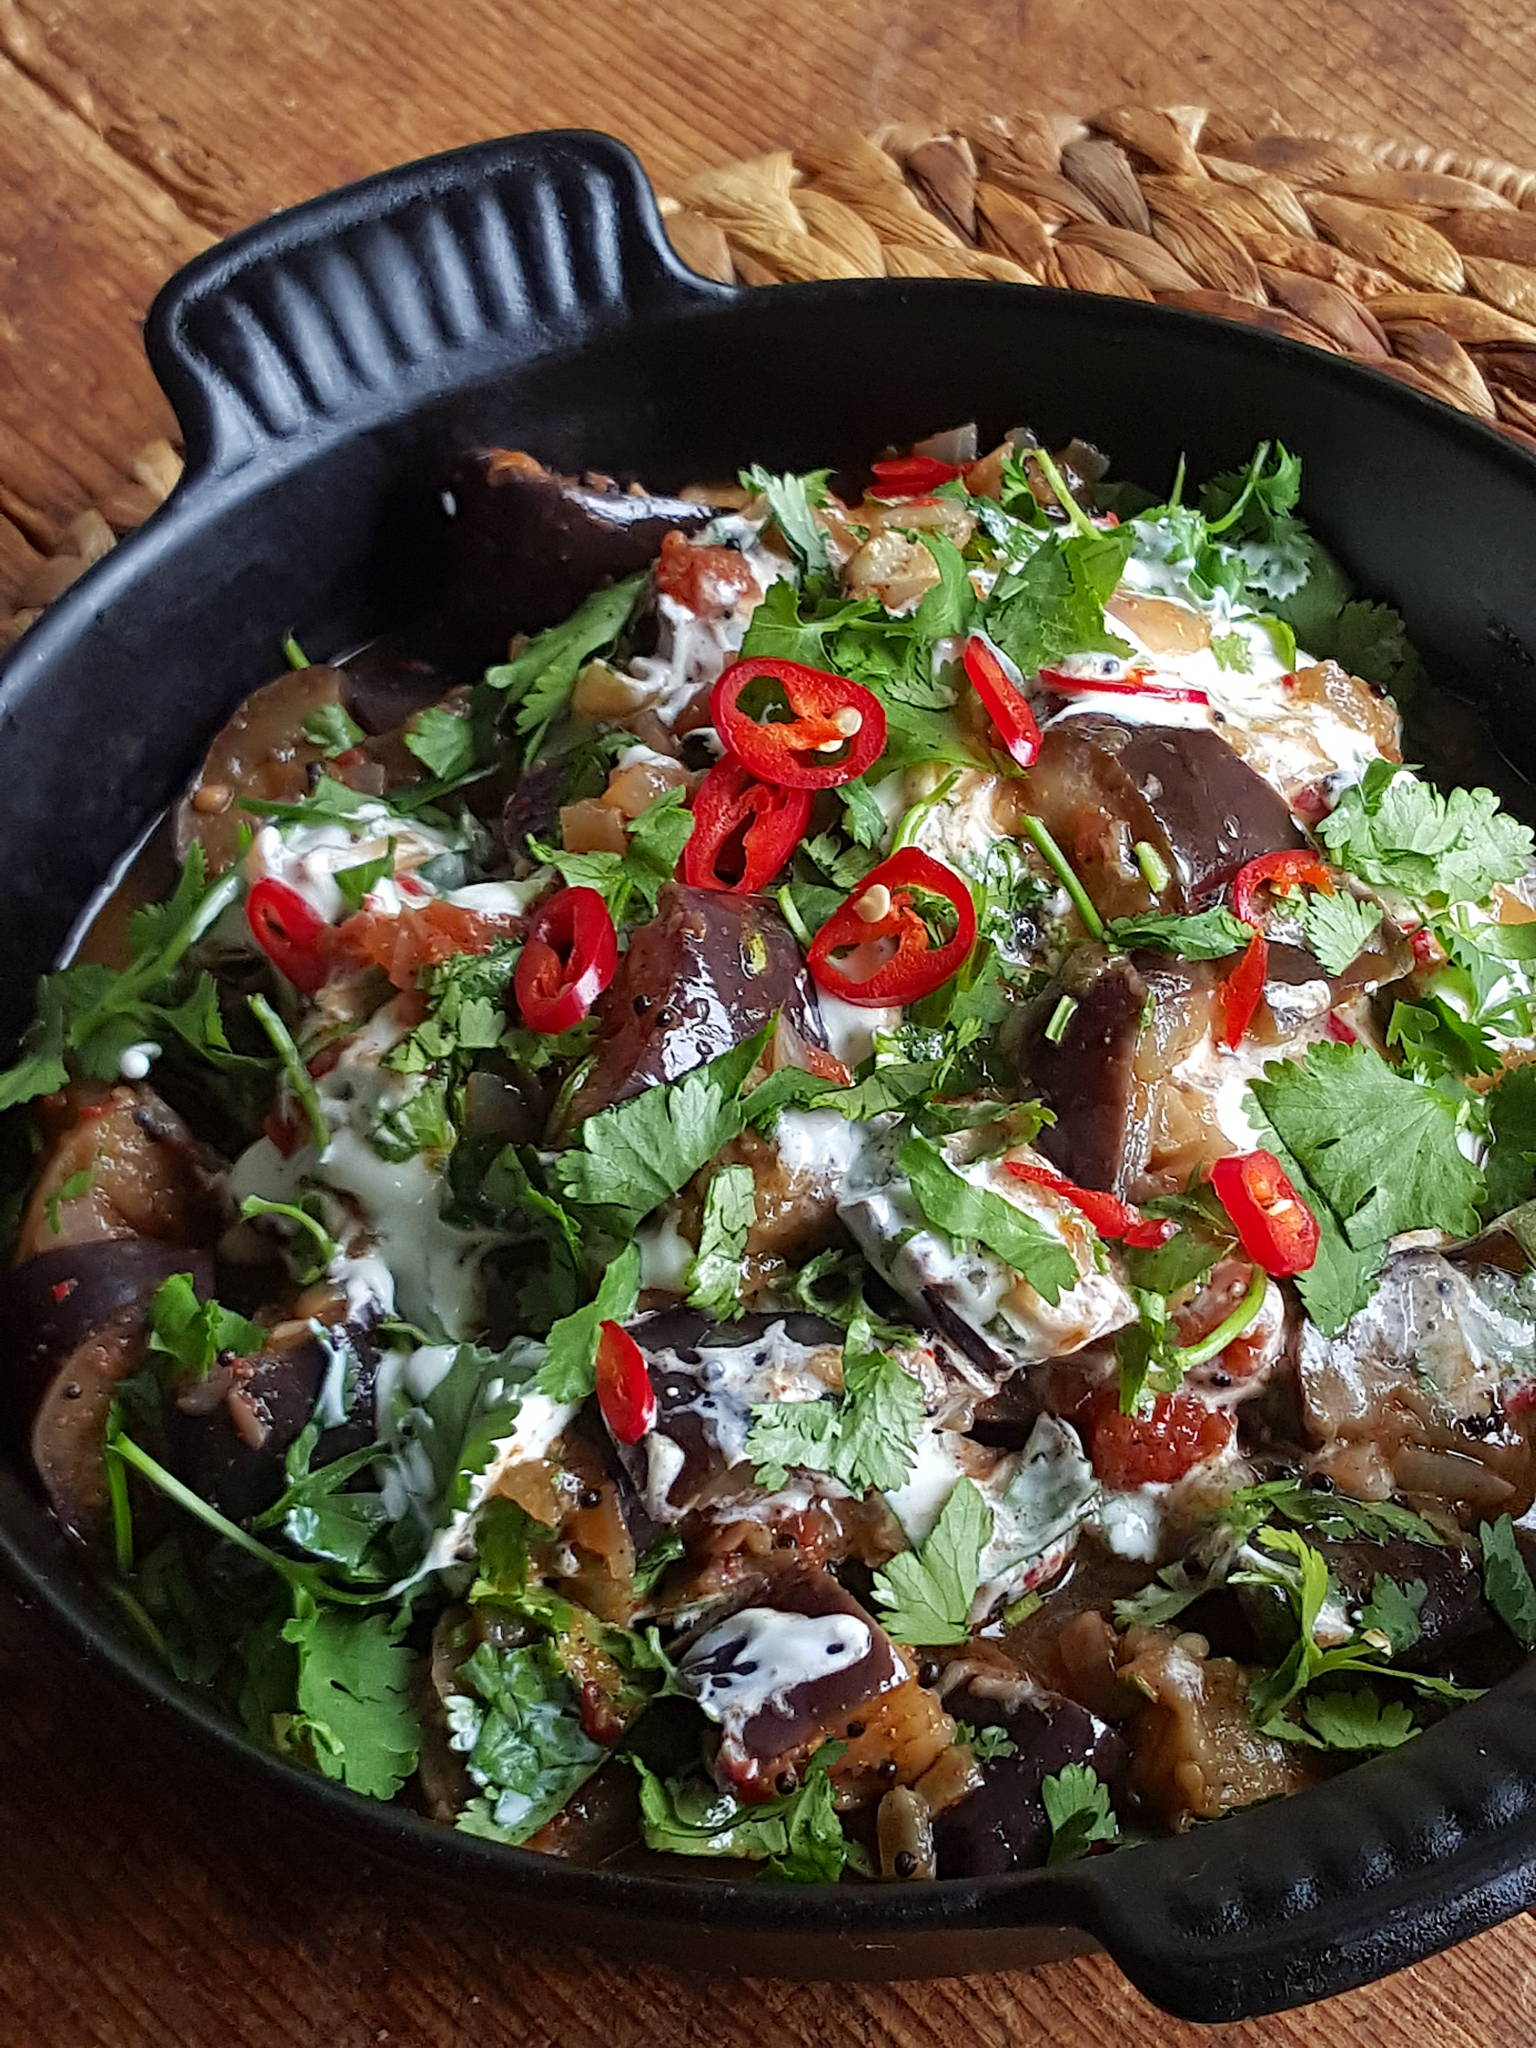 Eggplant with Spices